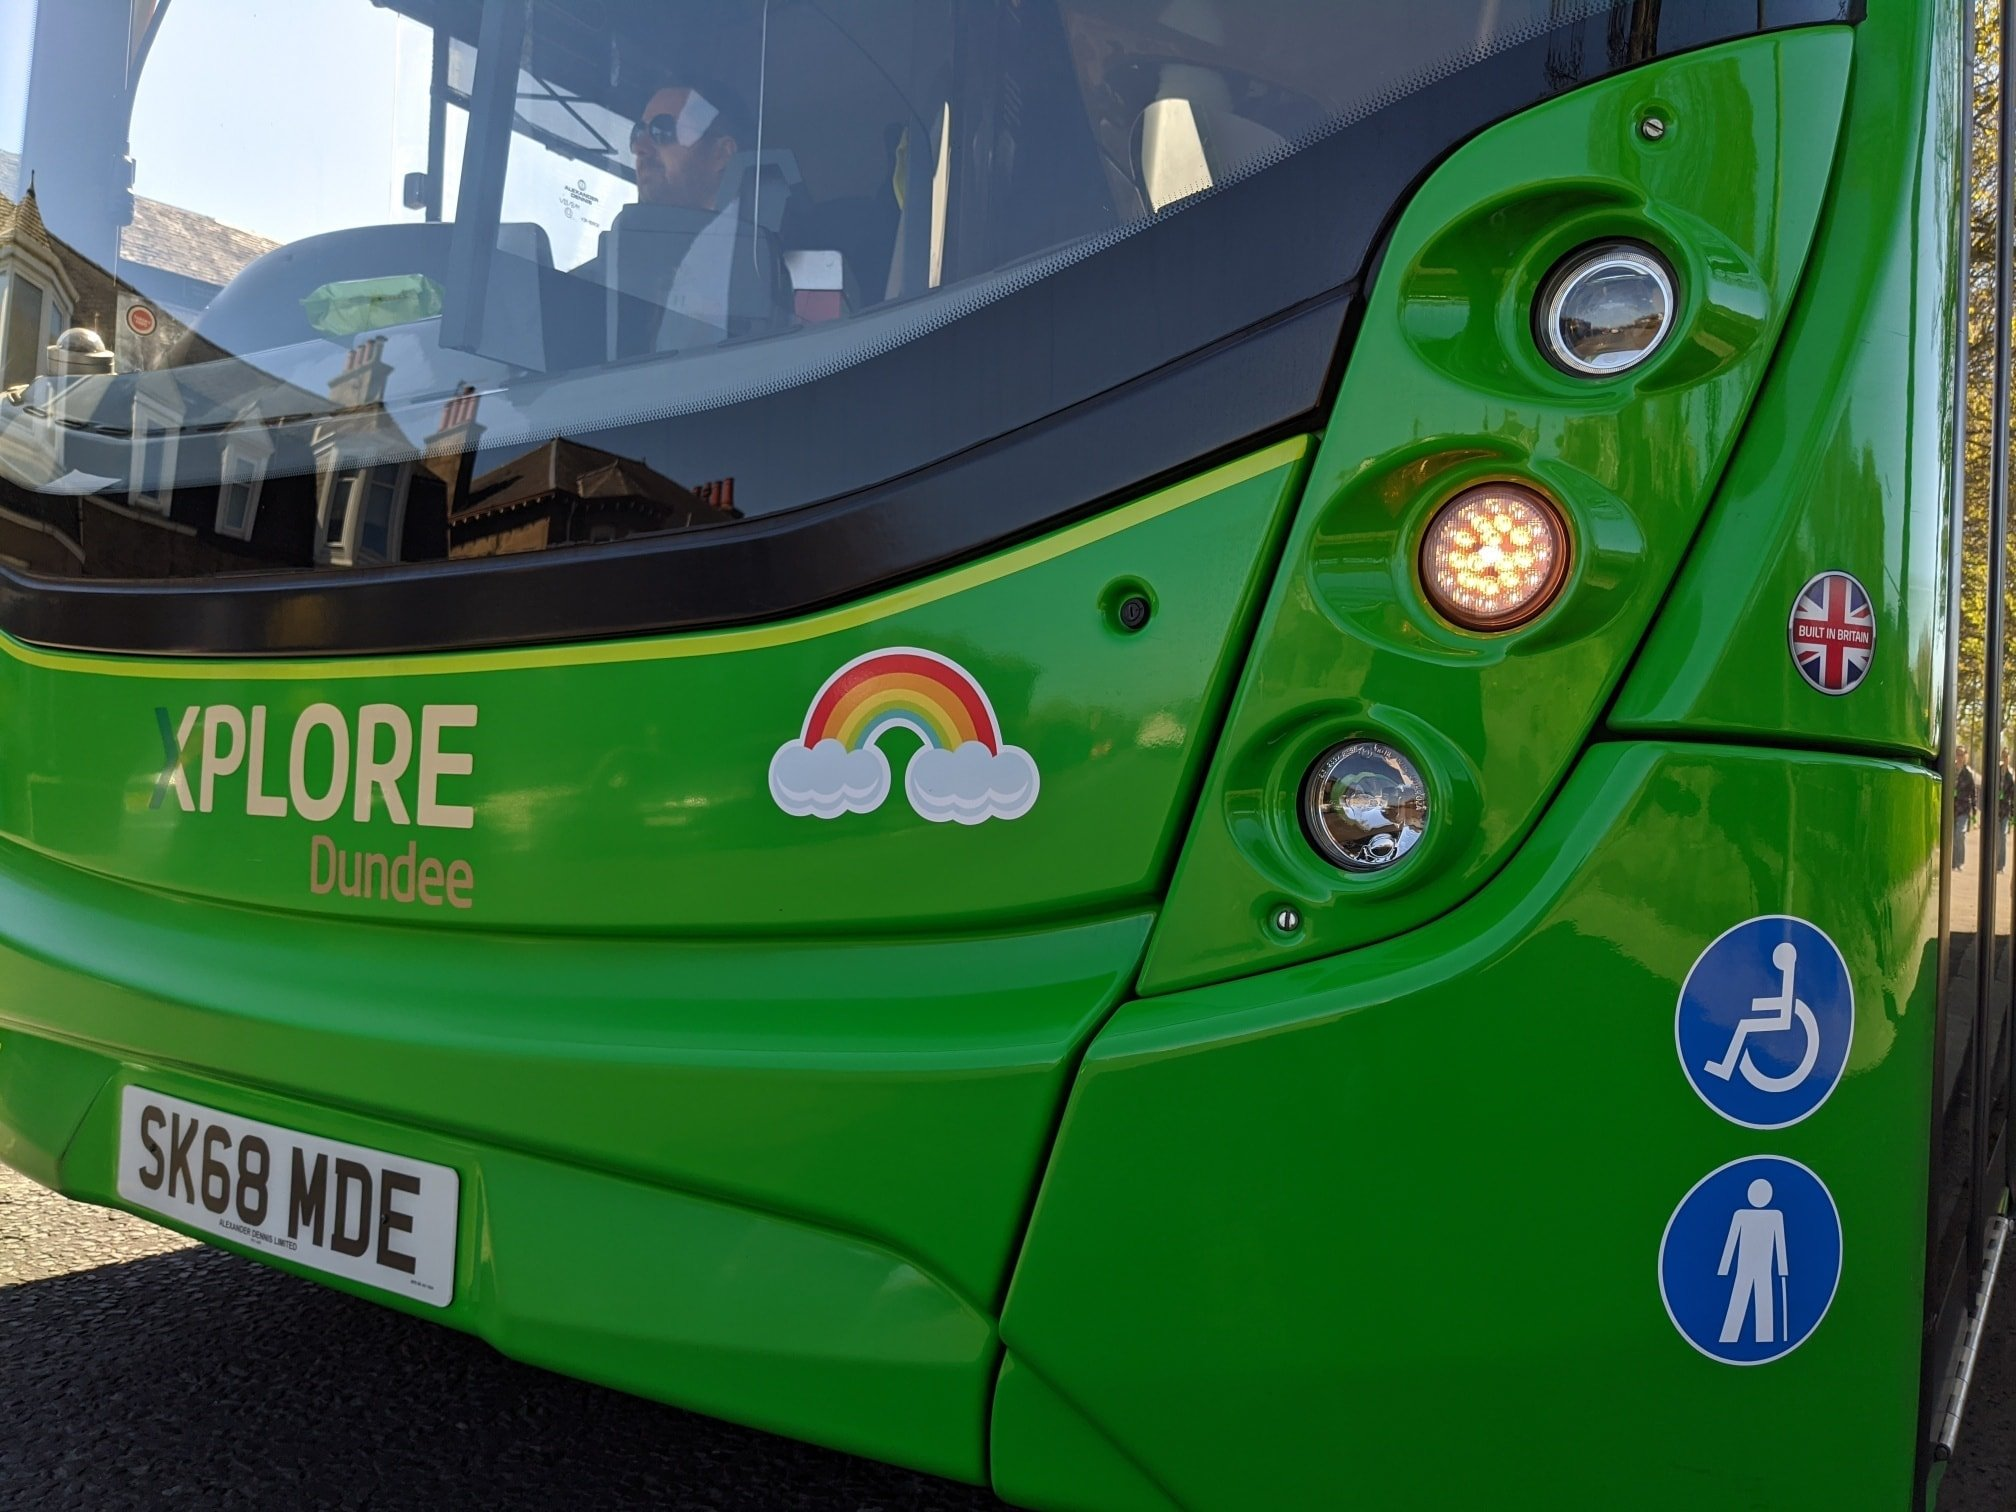 One of the rainbow stickers on an Xplore bus.